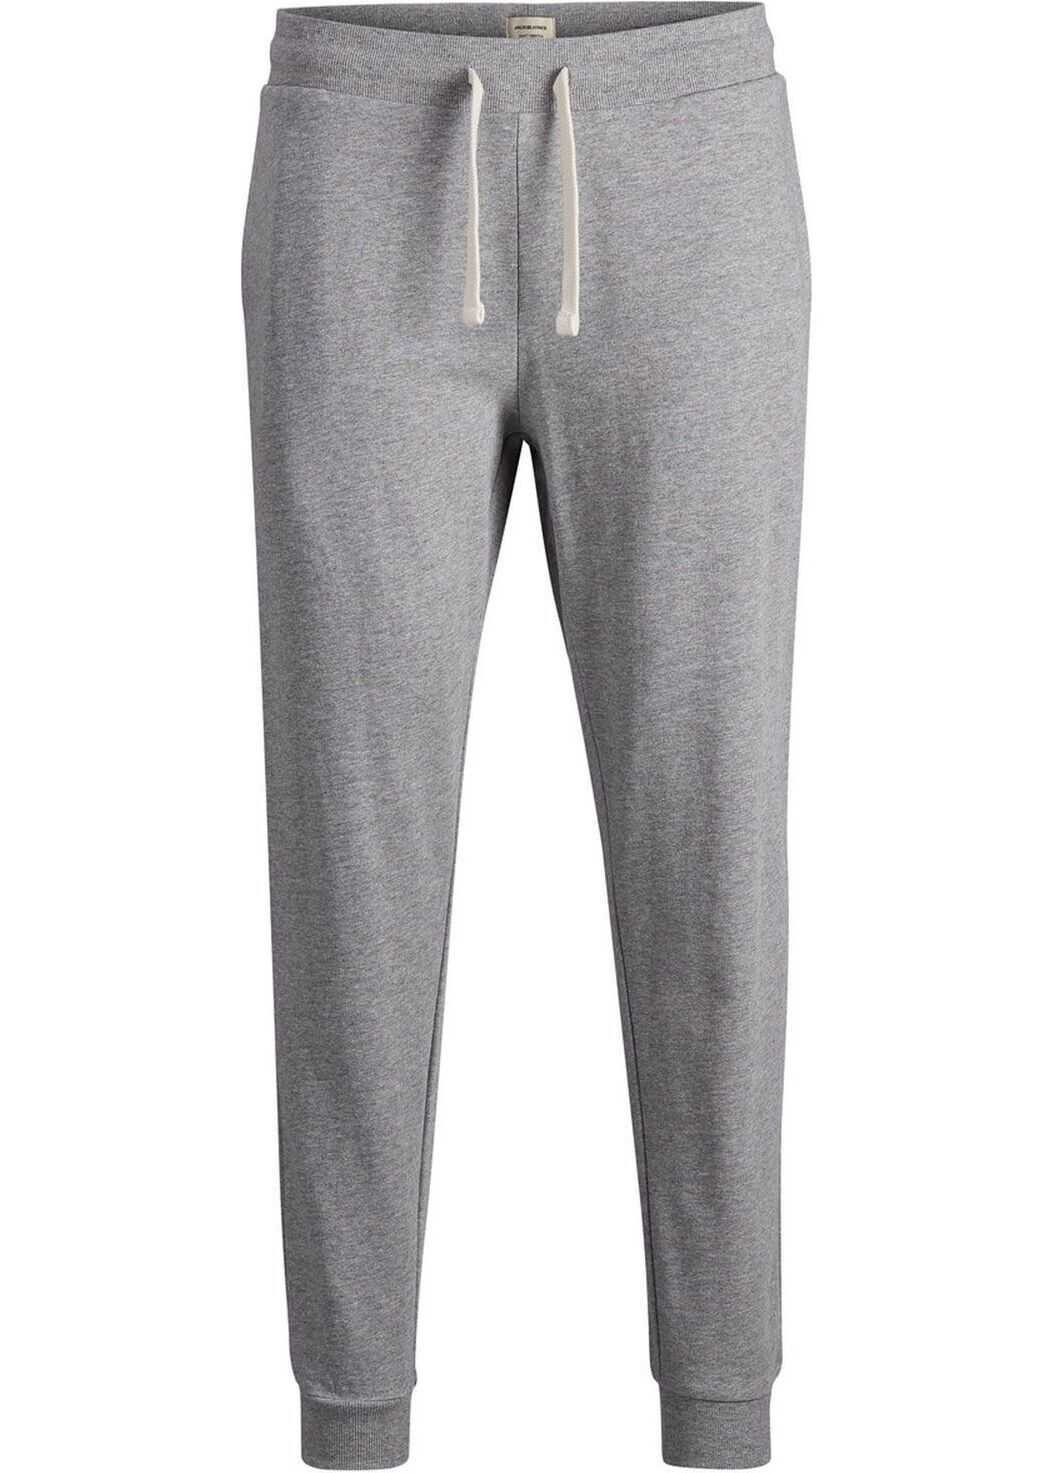 JACK & JONES 12136887Grey Cotton Joggers GREY